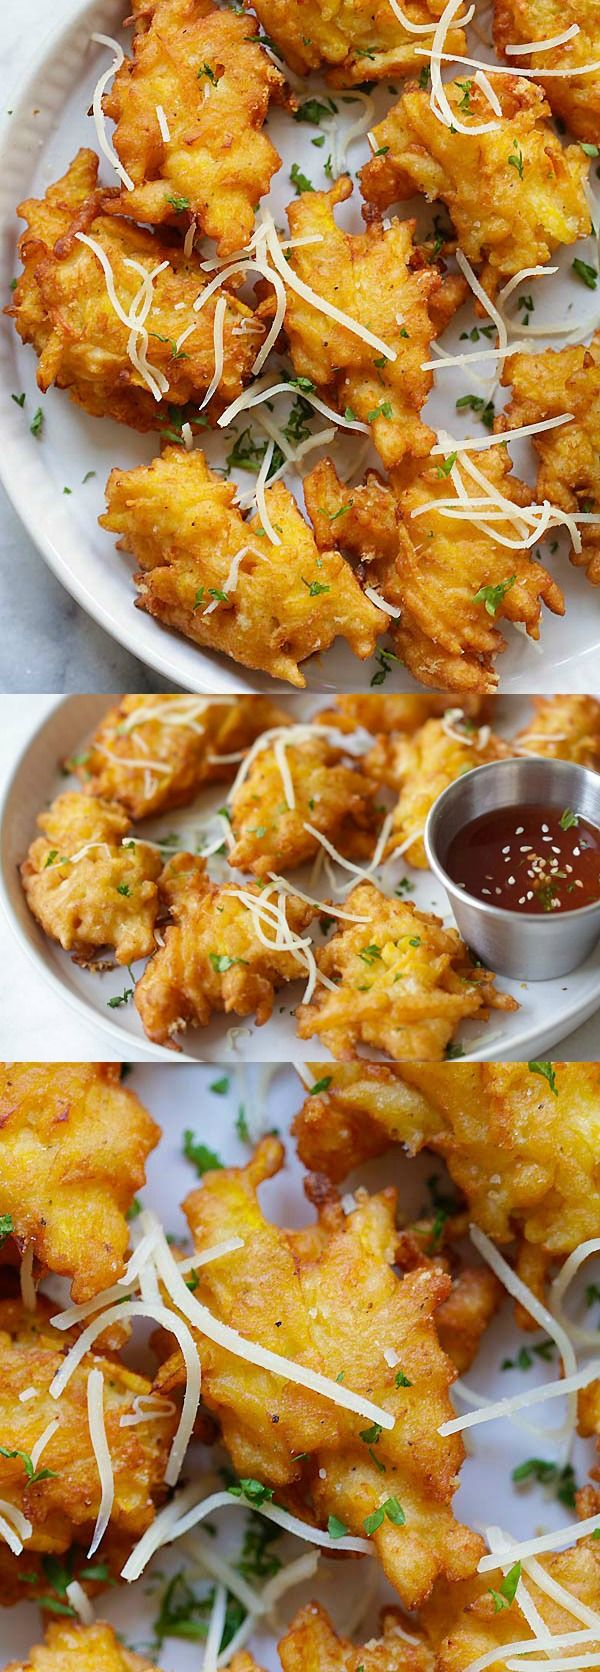 Crazy delicious pumpkin fritters recipe with Parmesan cheese. Easy, fail-proof and takes only 20 min | rasamalaysia.com